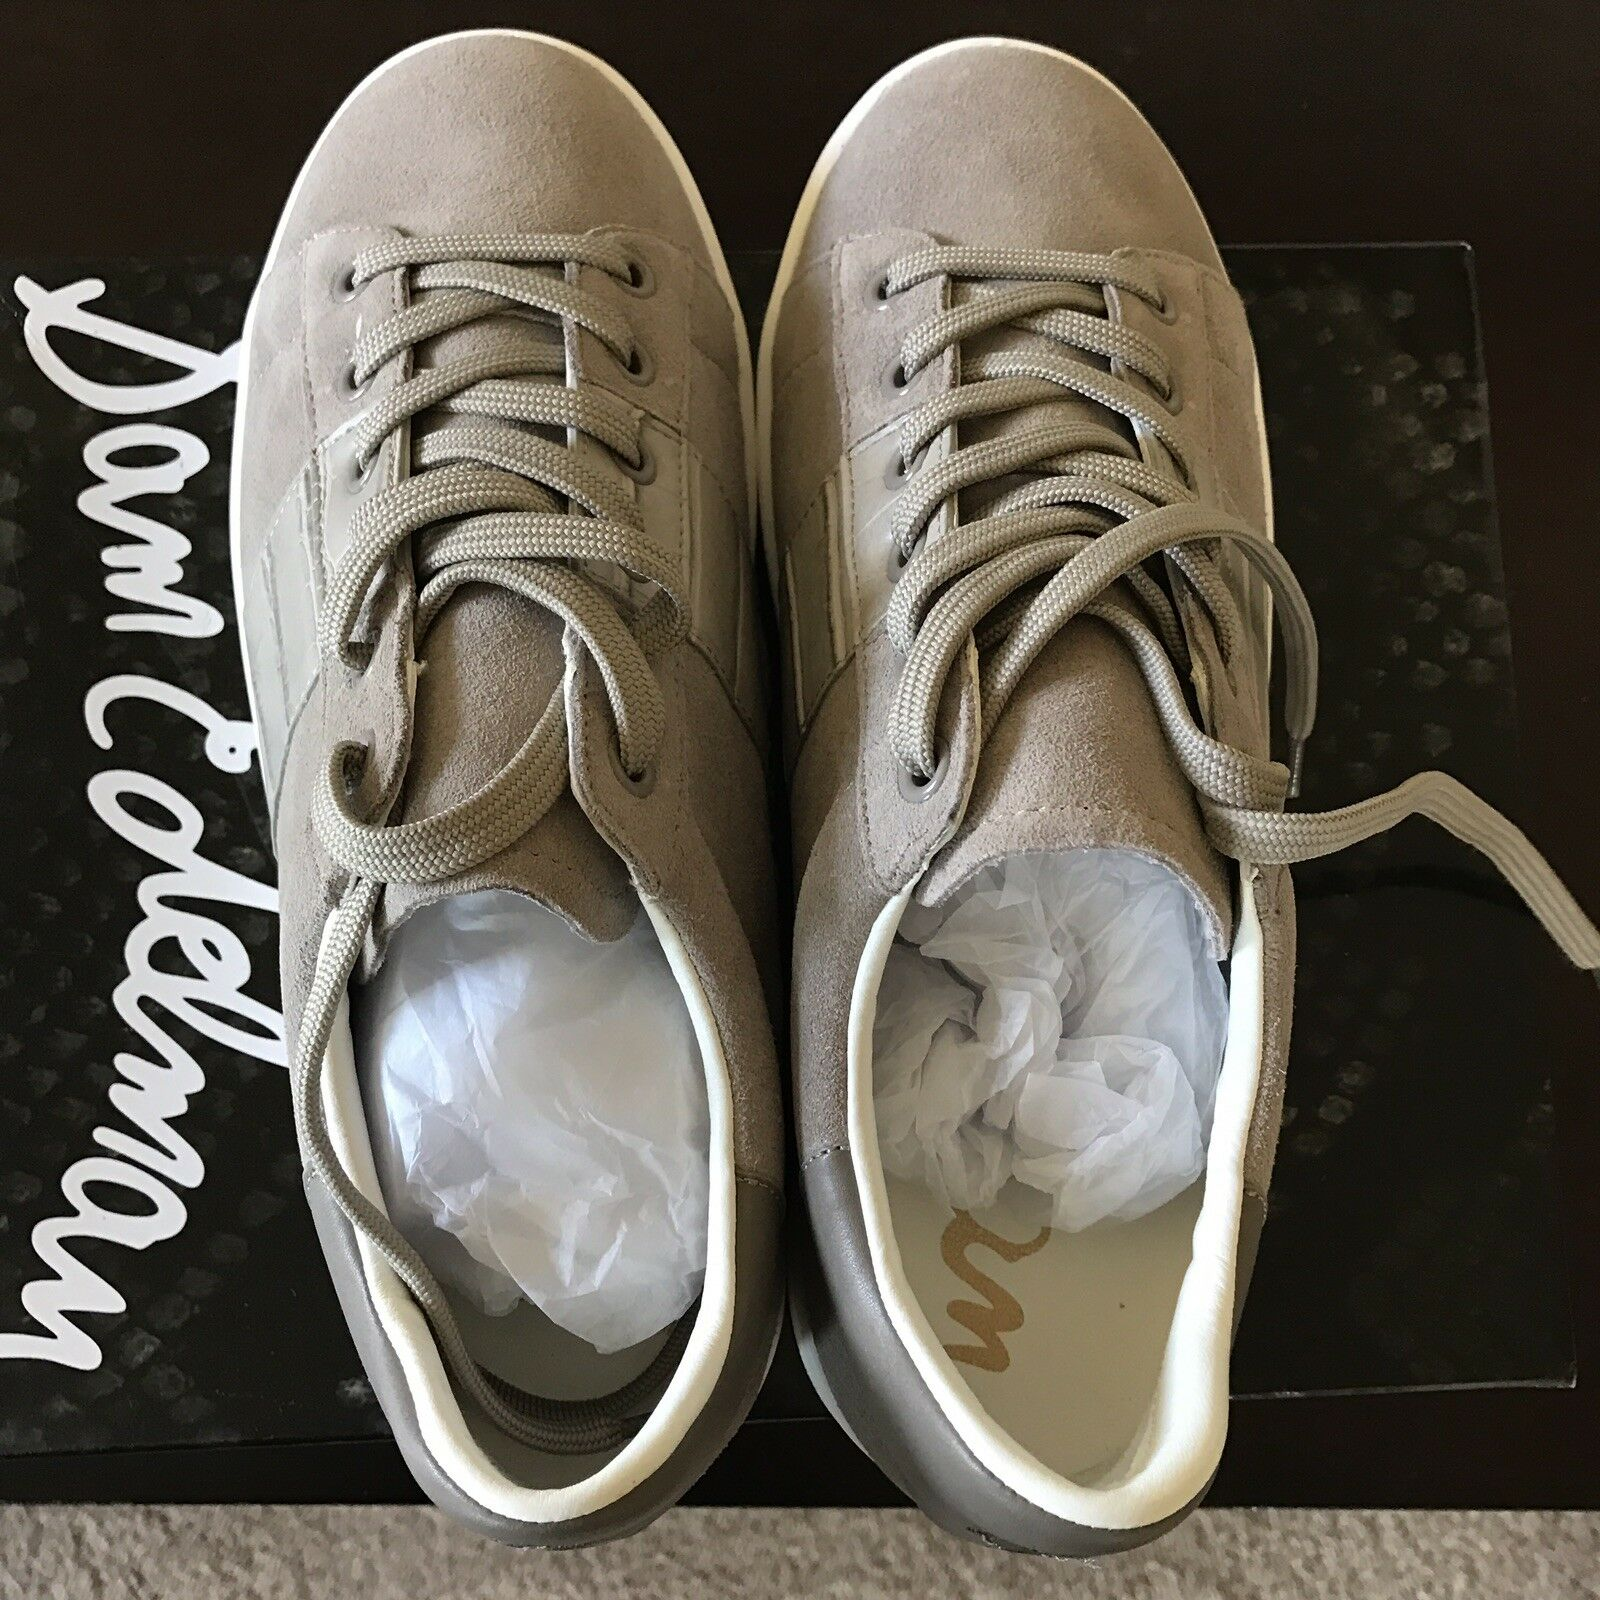 economico Marquette Suede Suede Suede Lace-Up scarpe da ginnastica, Putty (Beige)(Authentic ) Retail  130  a buon mercato